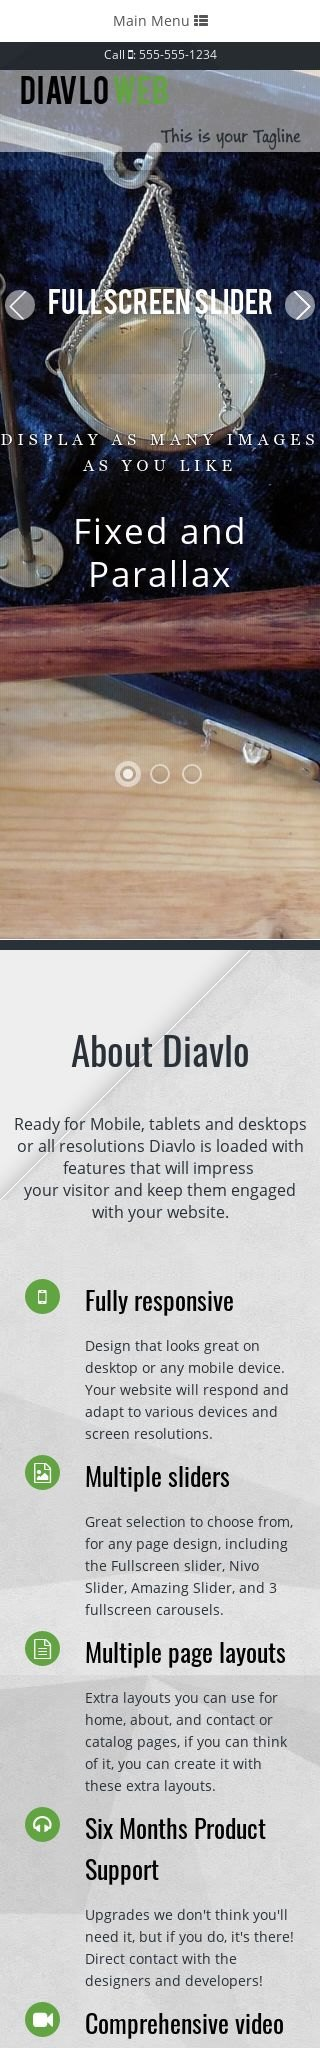 Mobile: Law Web Template